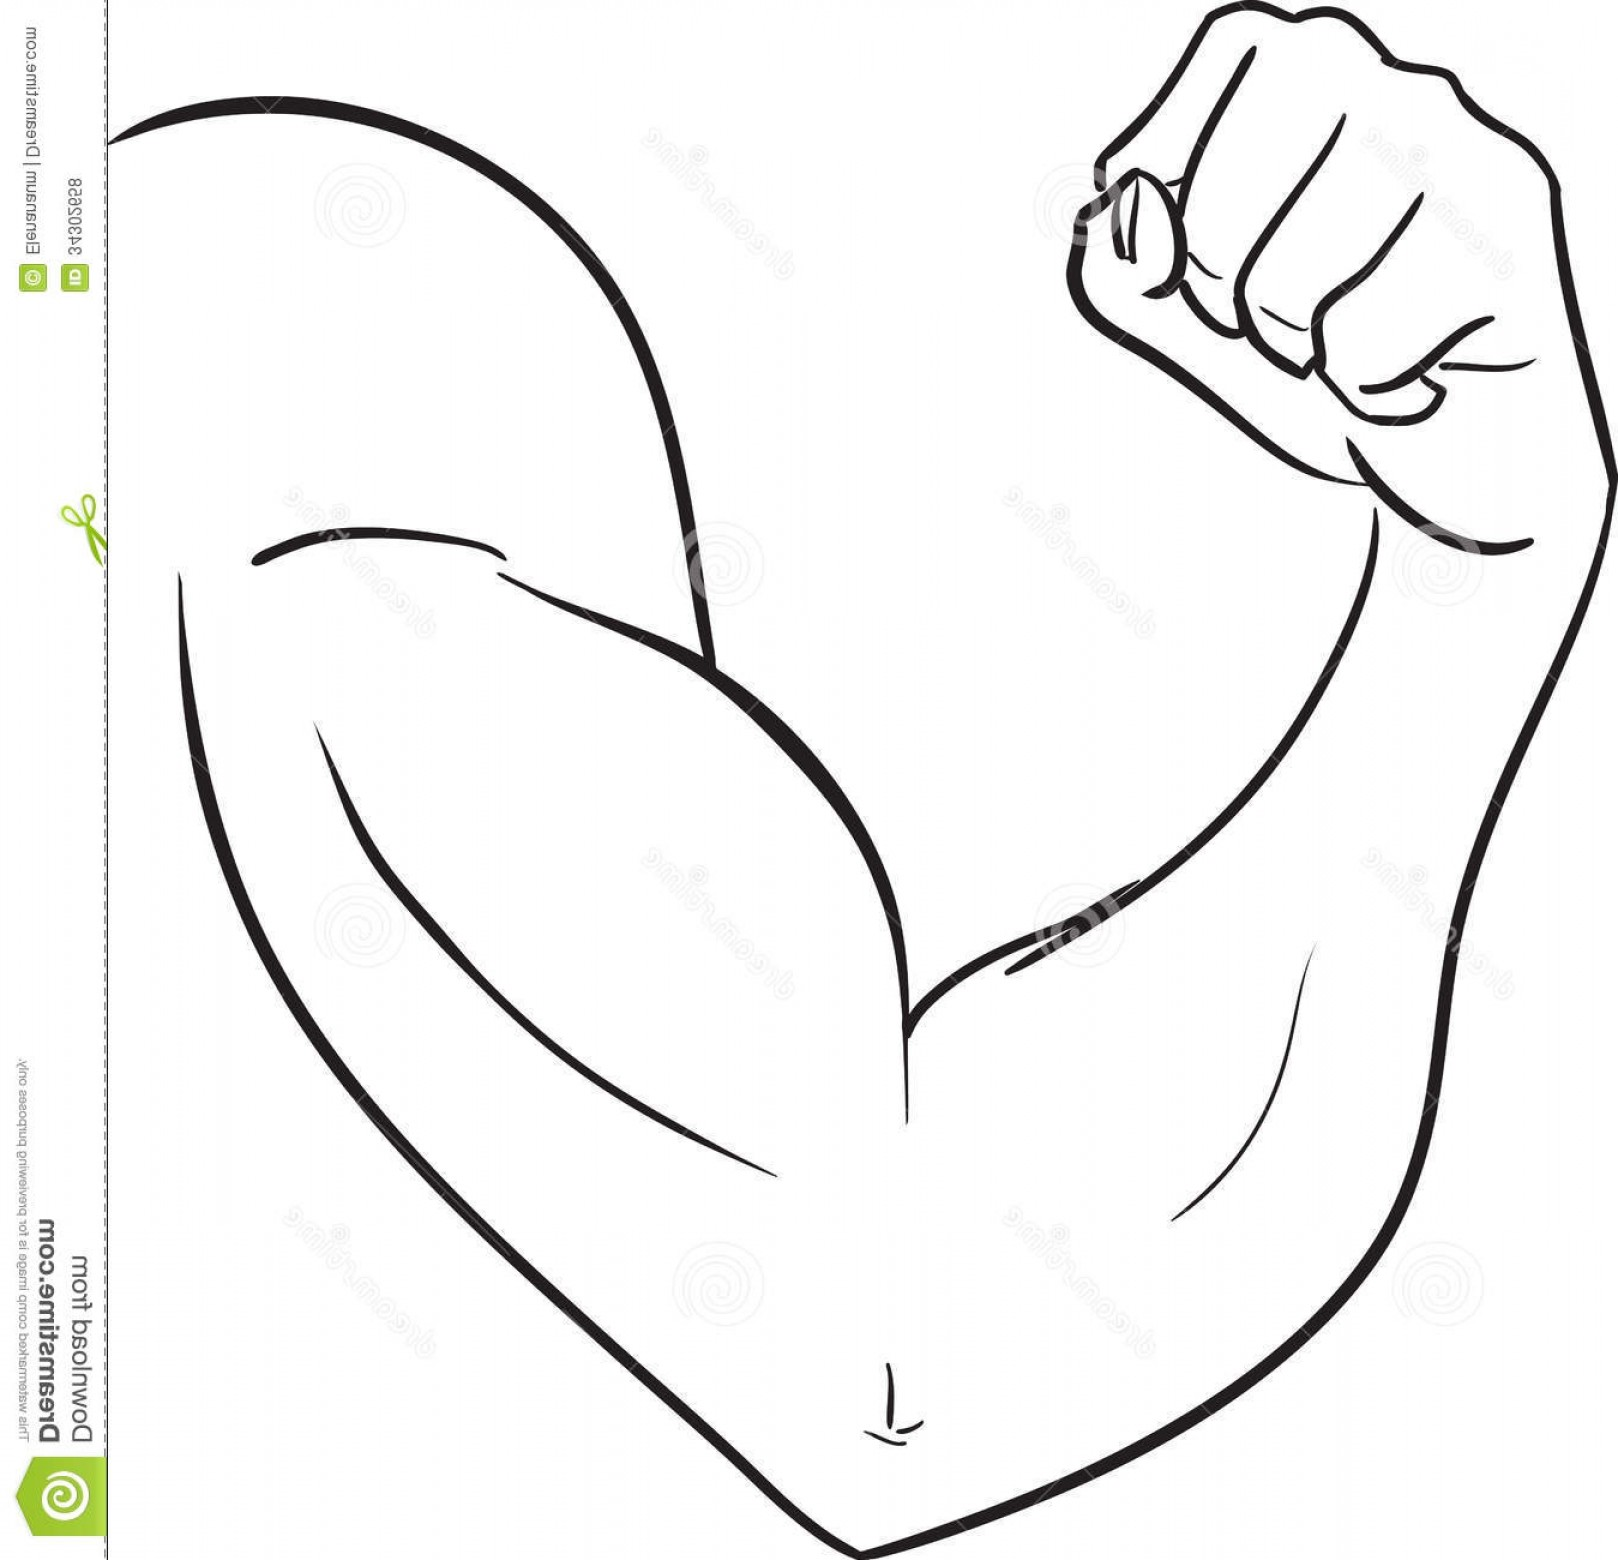 Black And White Clipart Arm.